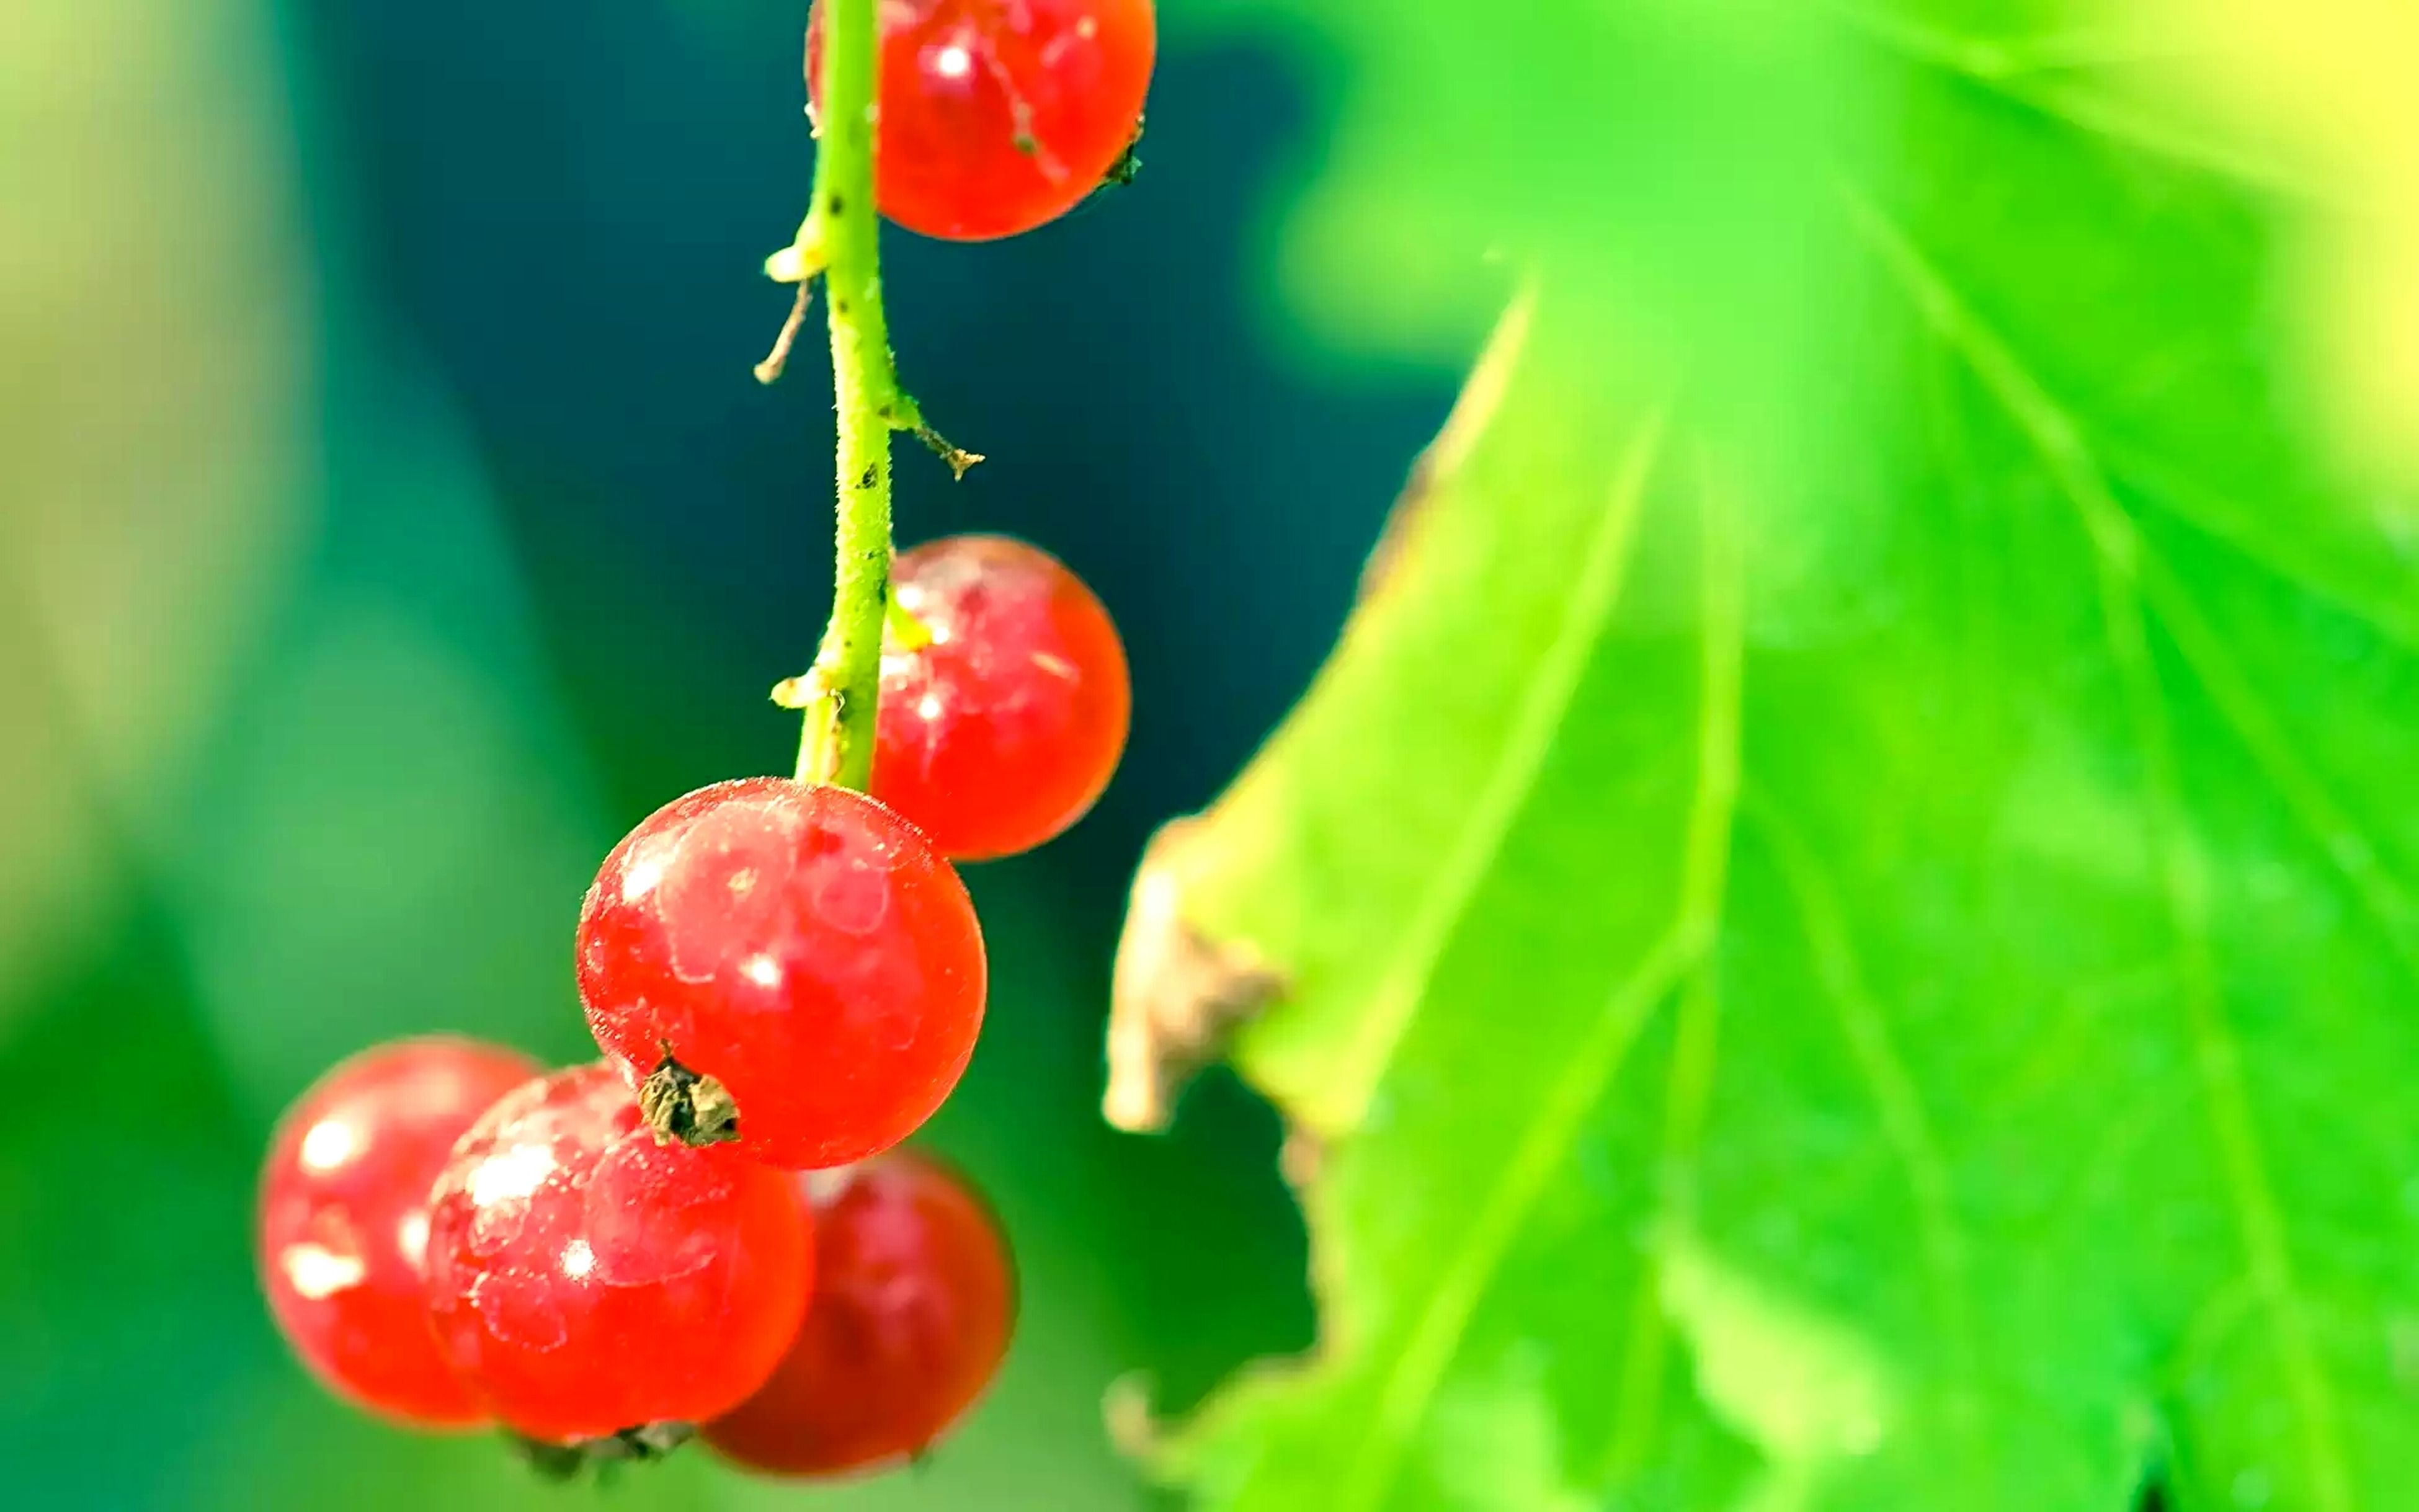 red, freshness, fruit, growth, close-up, food and drink, focus on foreground, green color, leaf, stem, plant, healthy eating, nature, food, bud, drop, ripe, selective focus, beauty in nature, growing